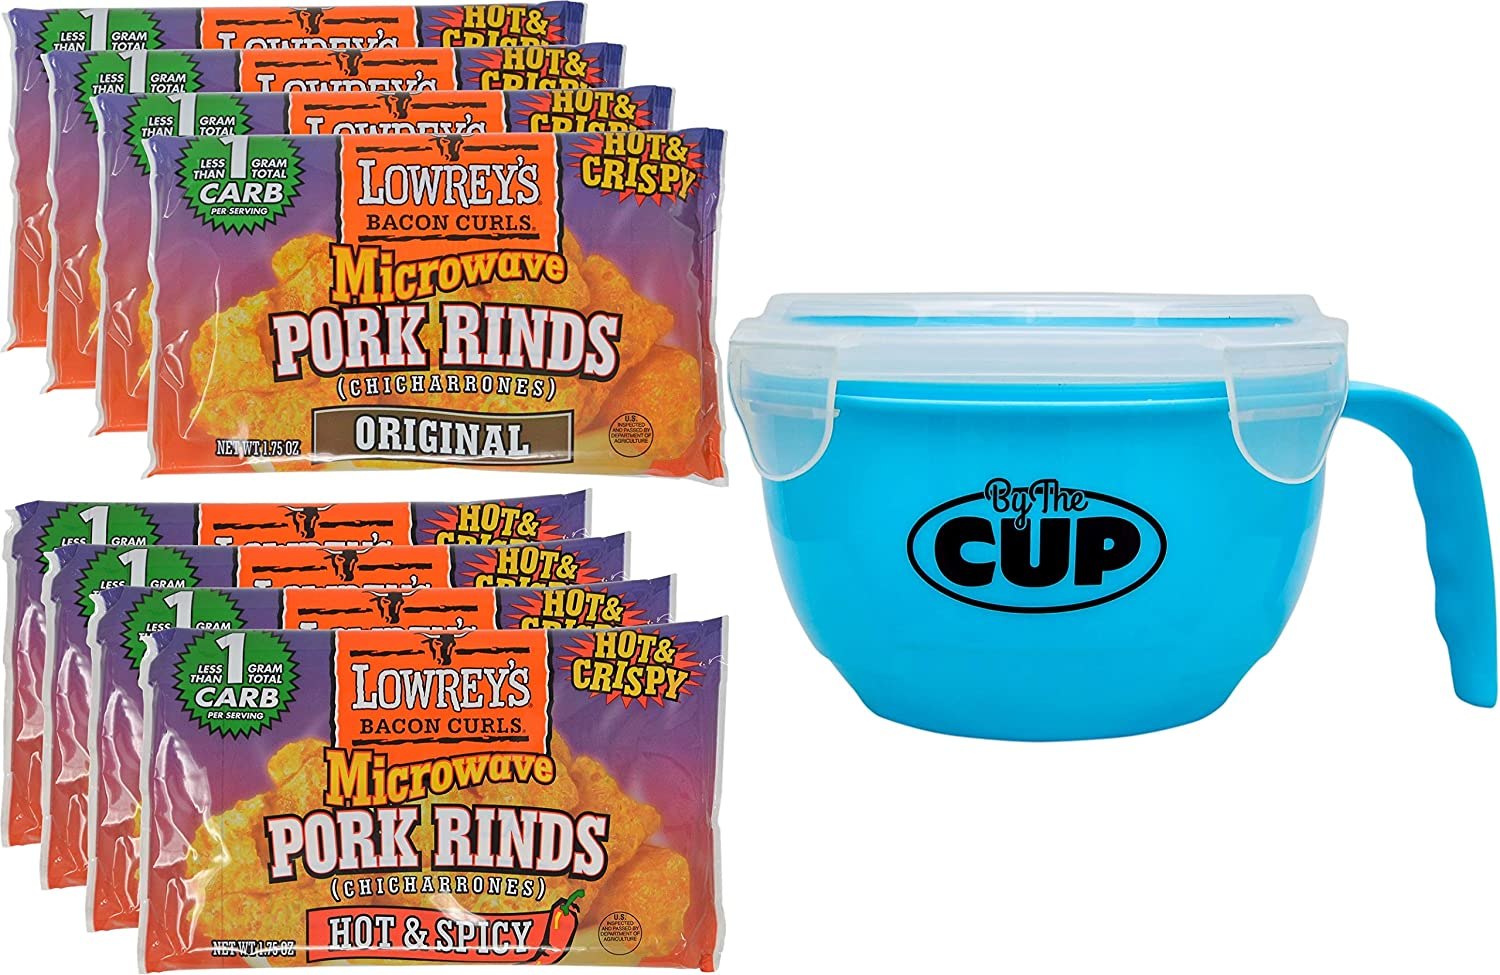 Lowrey's Bacon Curls Microwavable Pork Rinds Variety 8 Count, 4 of Each Original and Hot & Spicy with By The Cup Microwavable Bowl